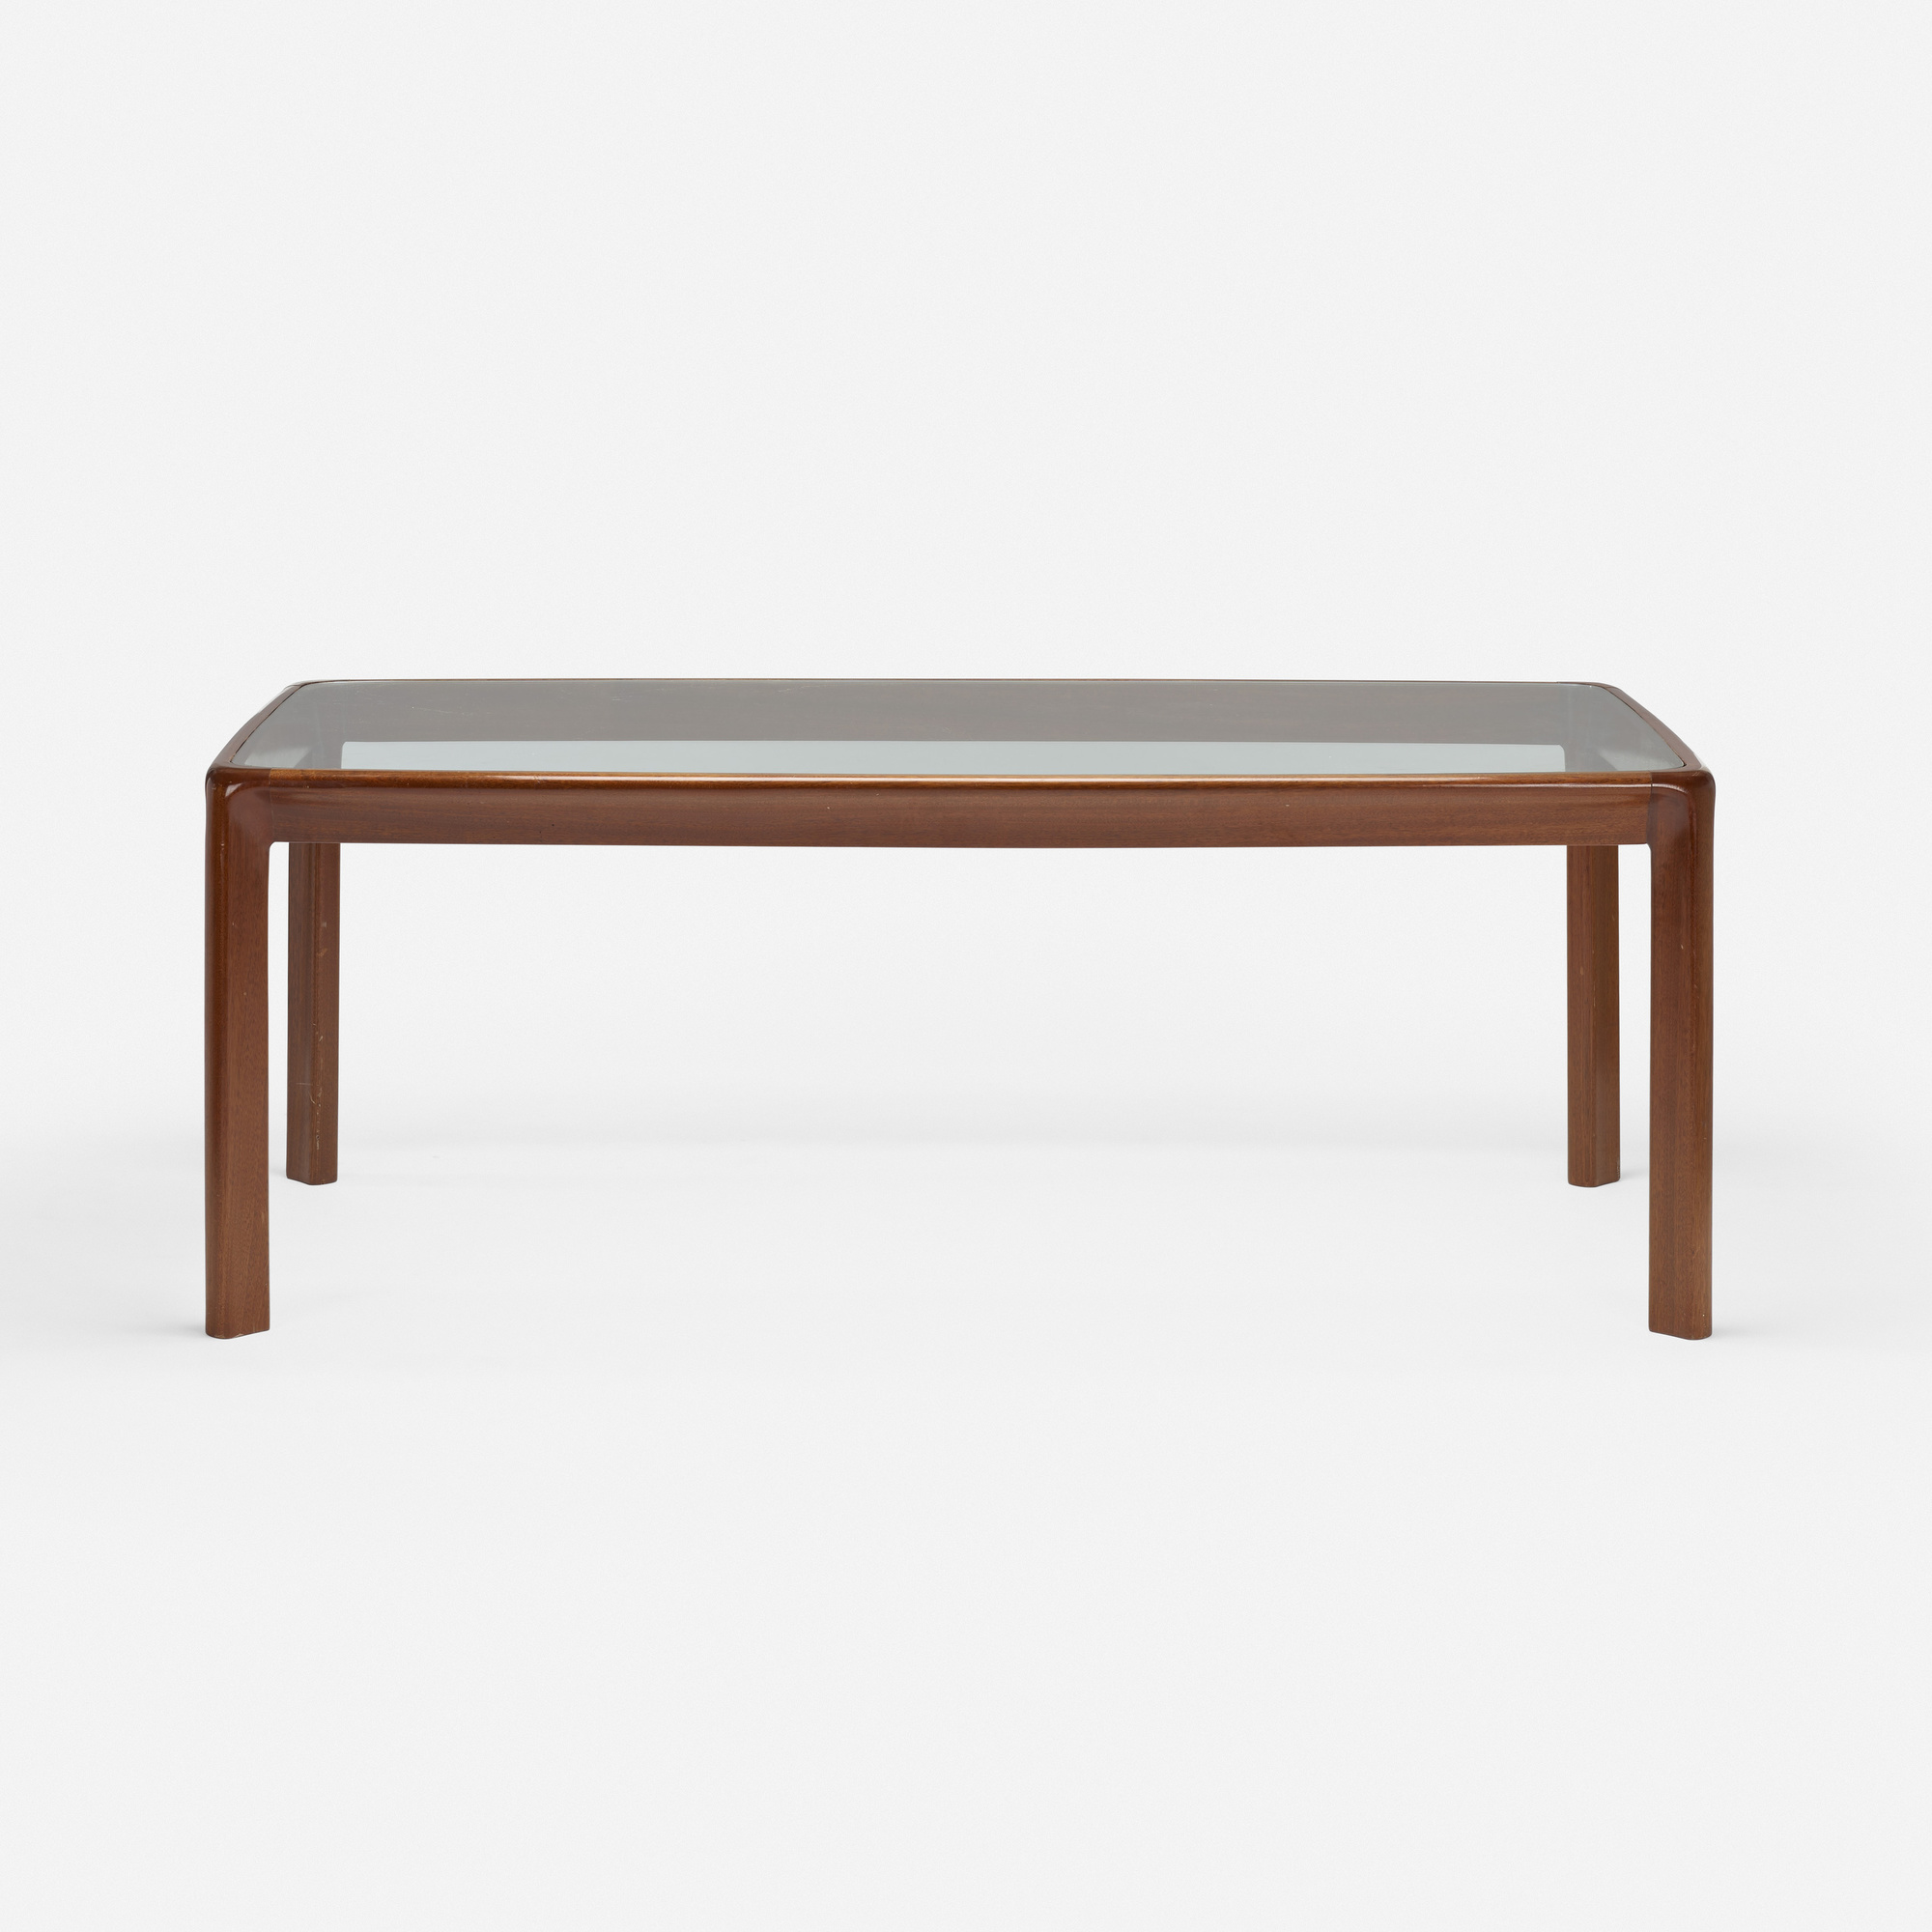 517: Angelo Mangiarotti / Denos dining table (2 of 3)